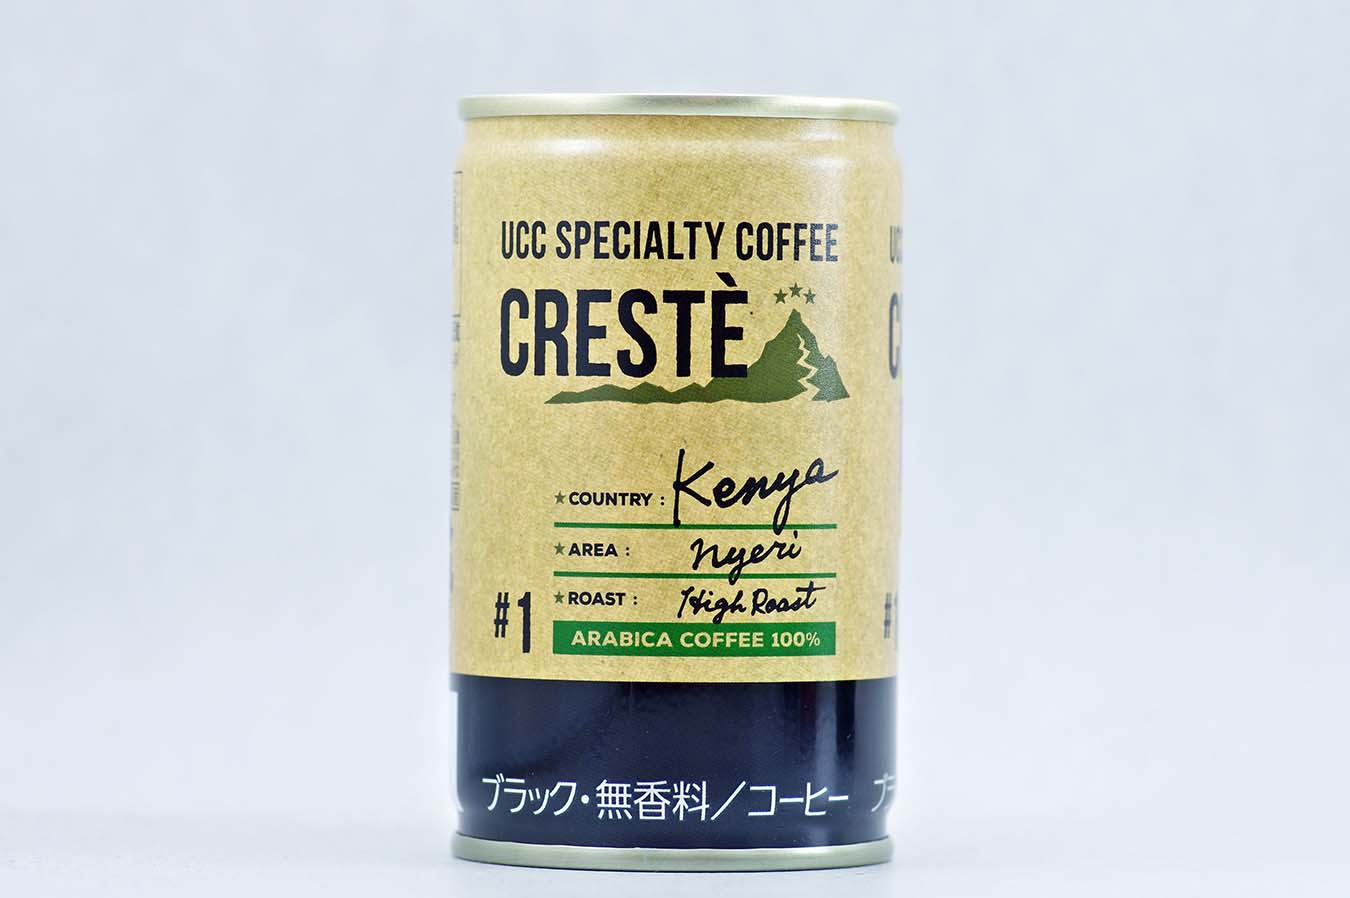 UCC SPECIALTY COFFEE CRESTE